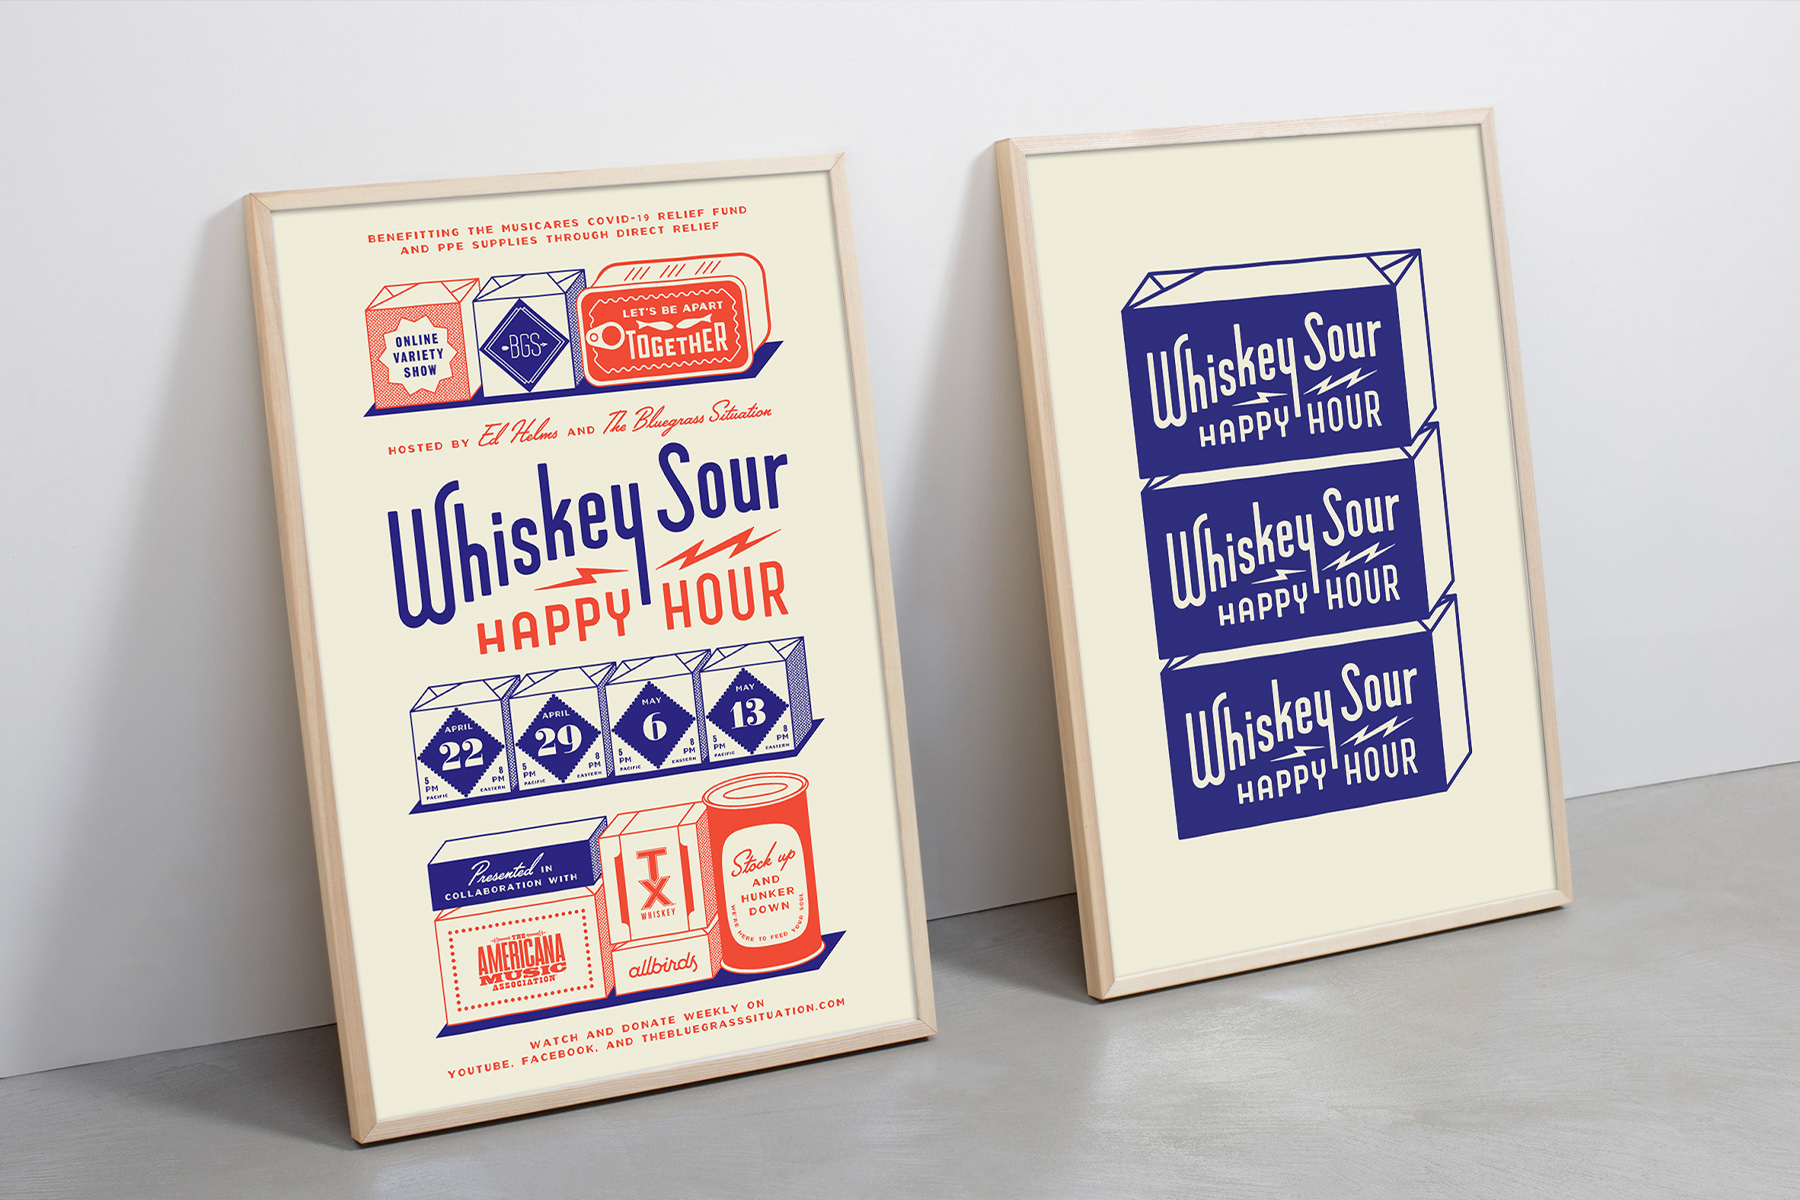 The Made Shop Created Digital Branding and Social Media Marketing for Whiskey Sour Happy Hour